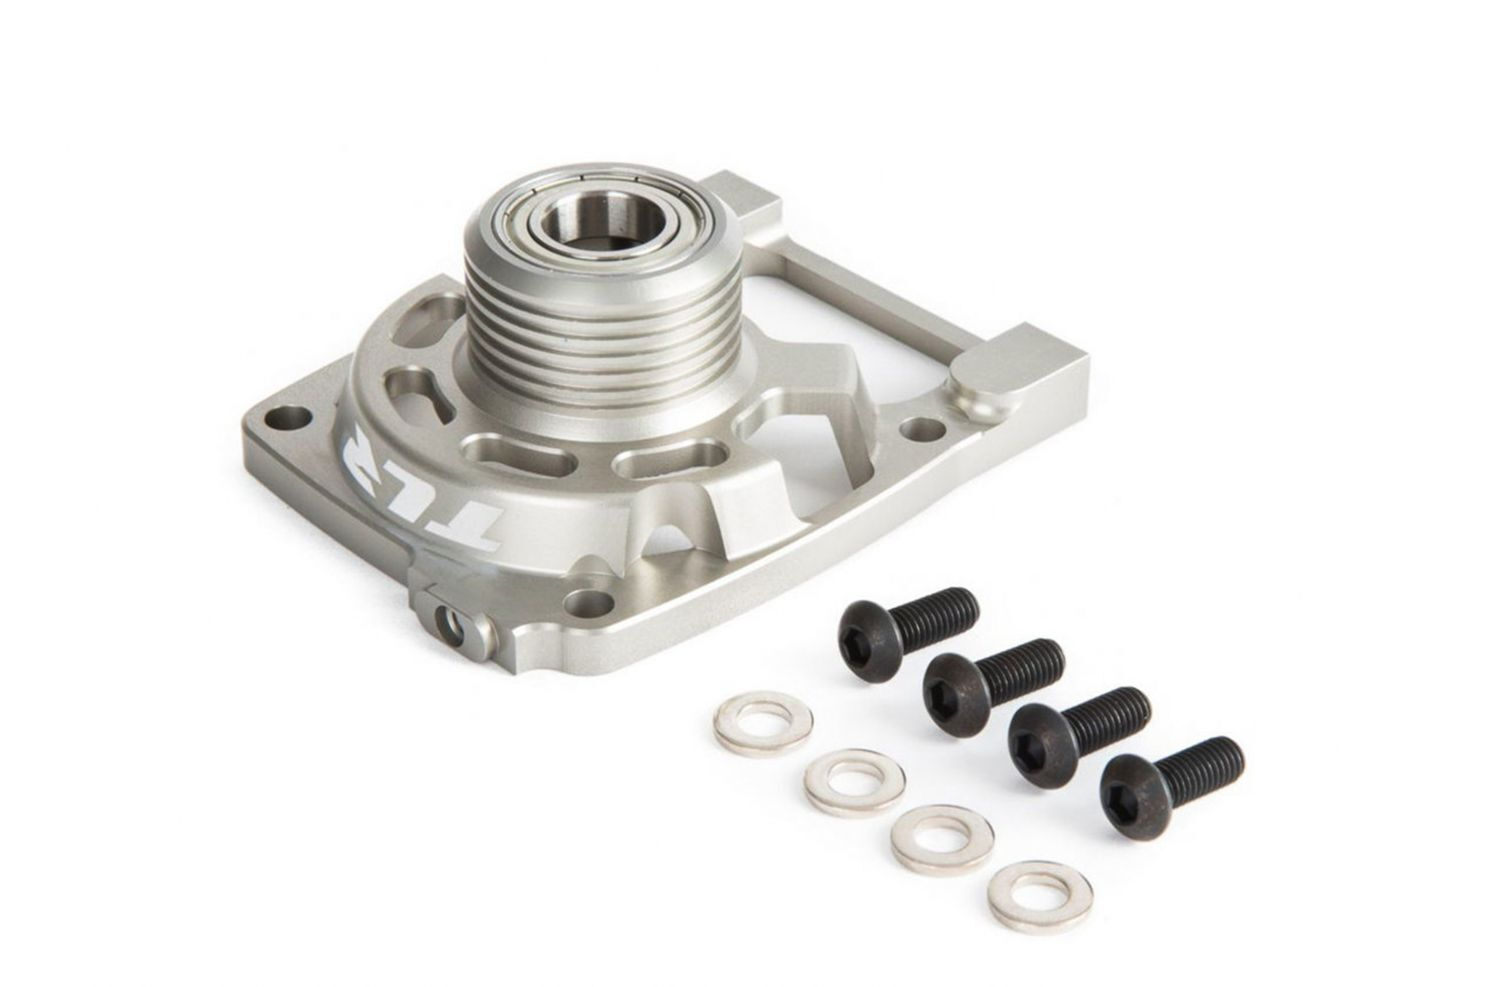 TLR kupplungsglockengehäuse, alu 5ive-b 5ive-t - tlr252012 clutch Mount embrague